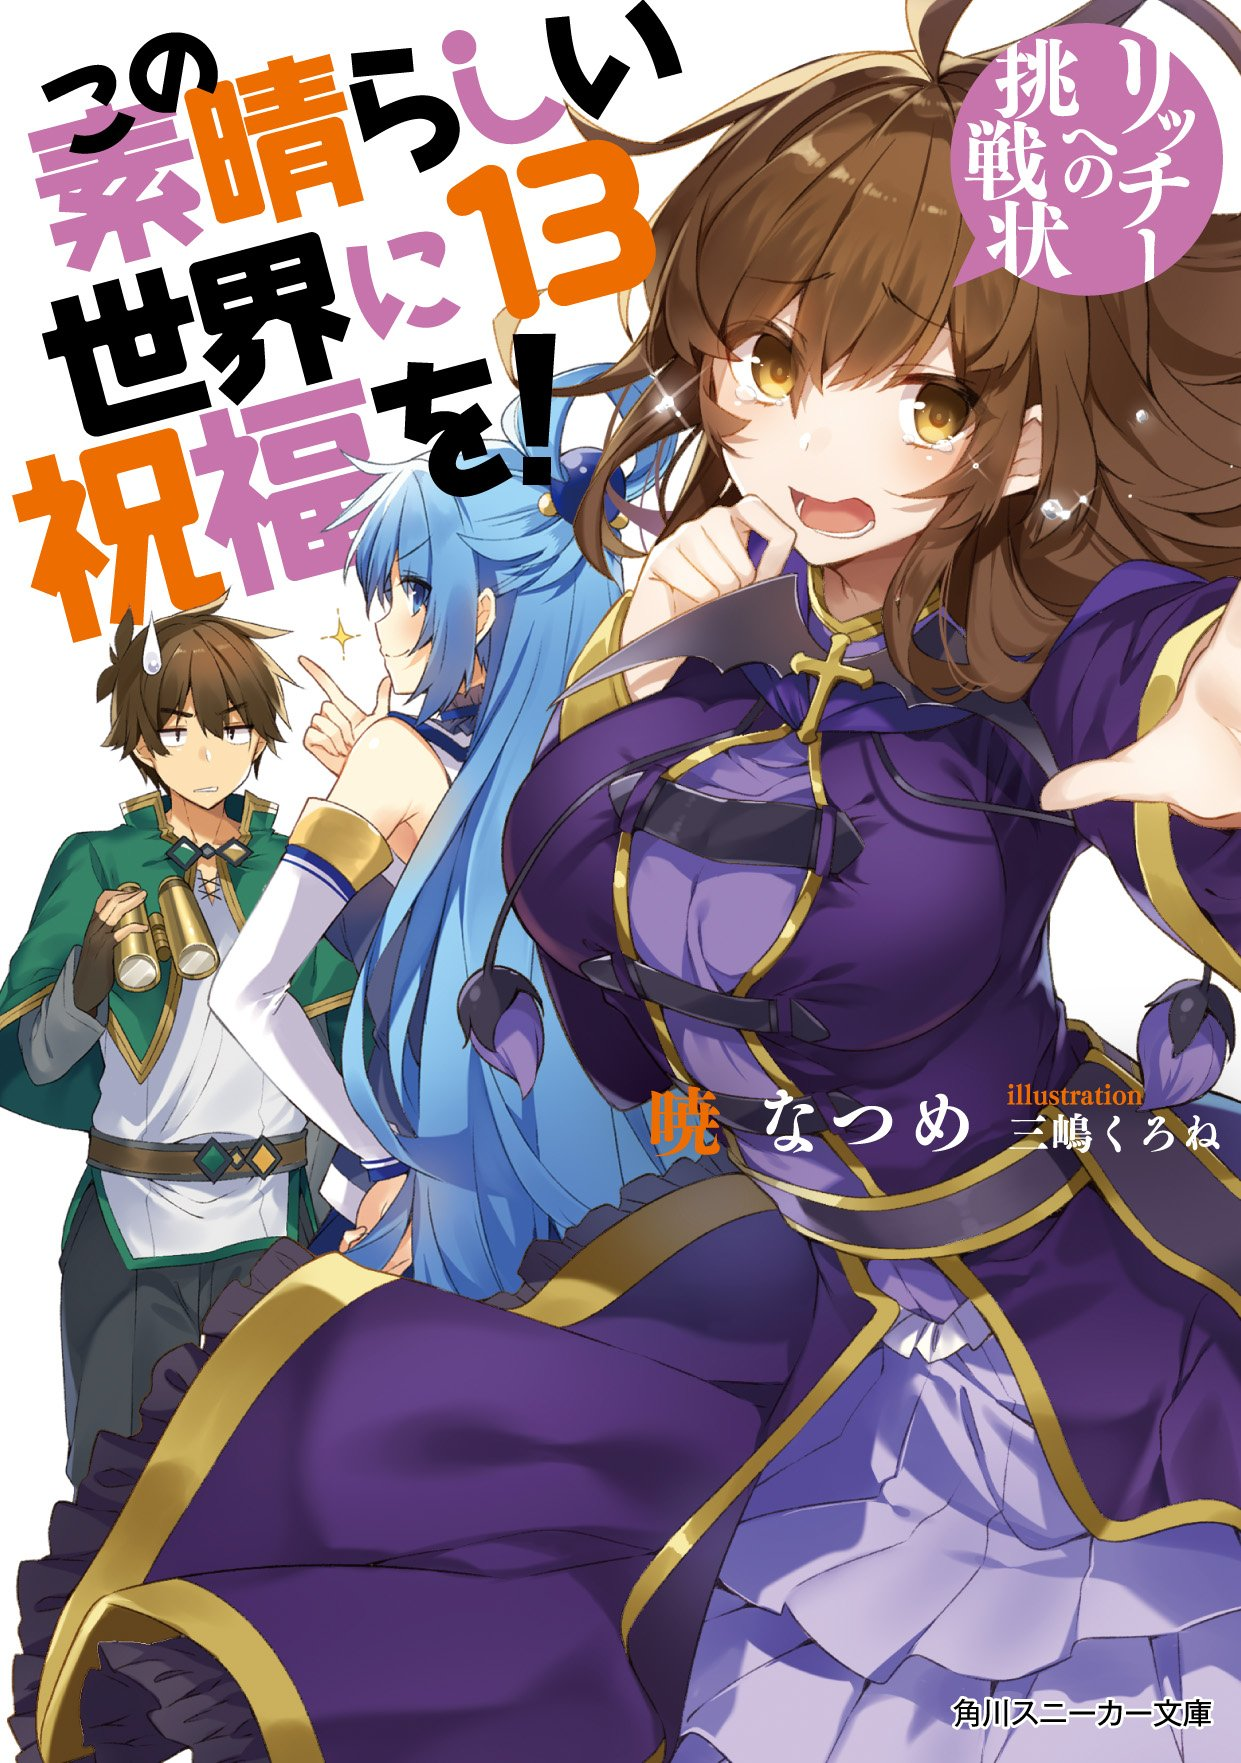 Konosuba Light Novel Volume 13 Kono Subarashii Sekai Ni Shukufuku